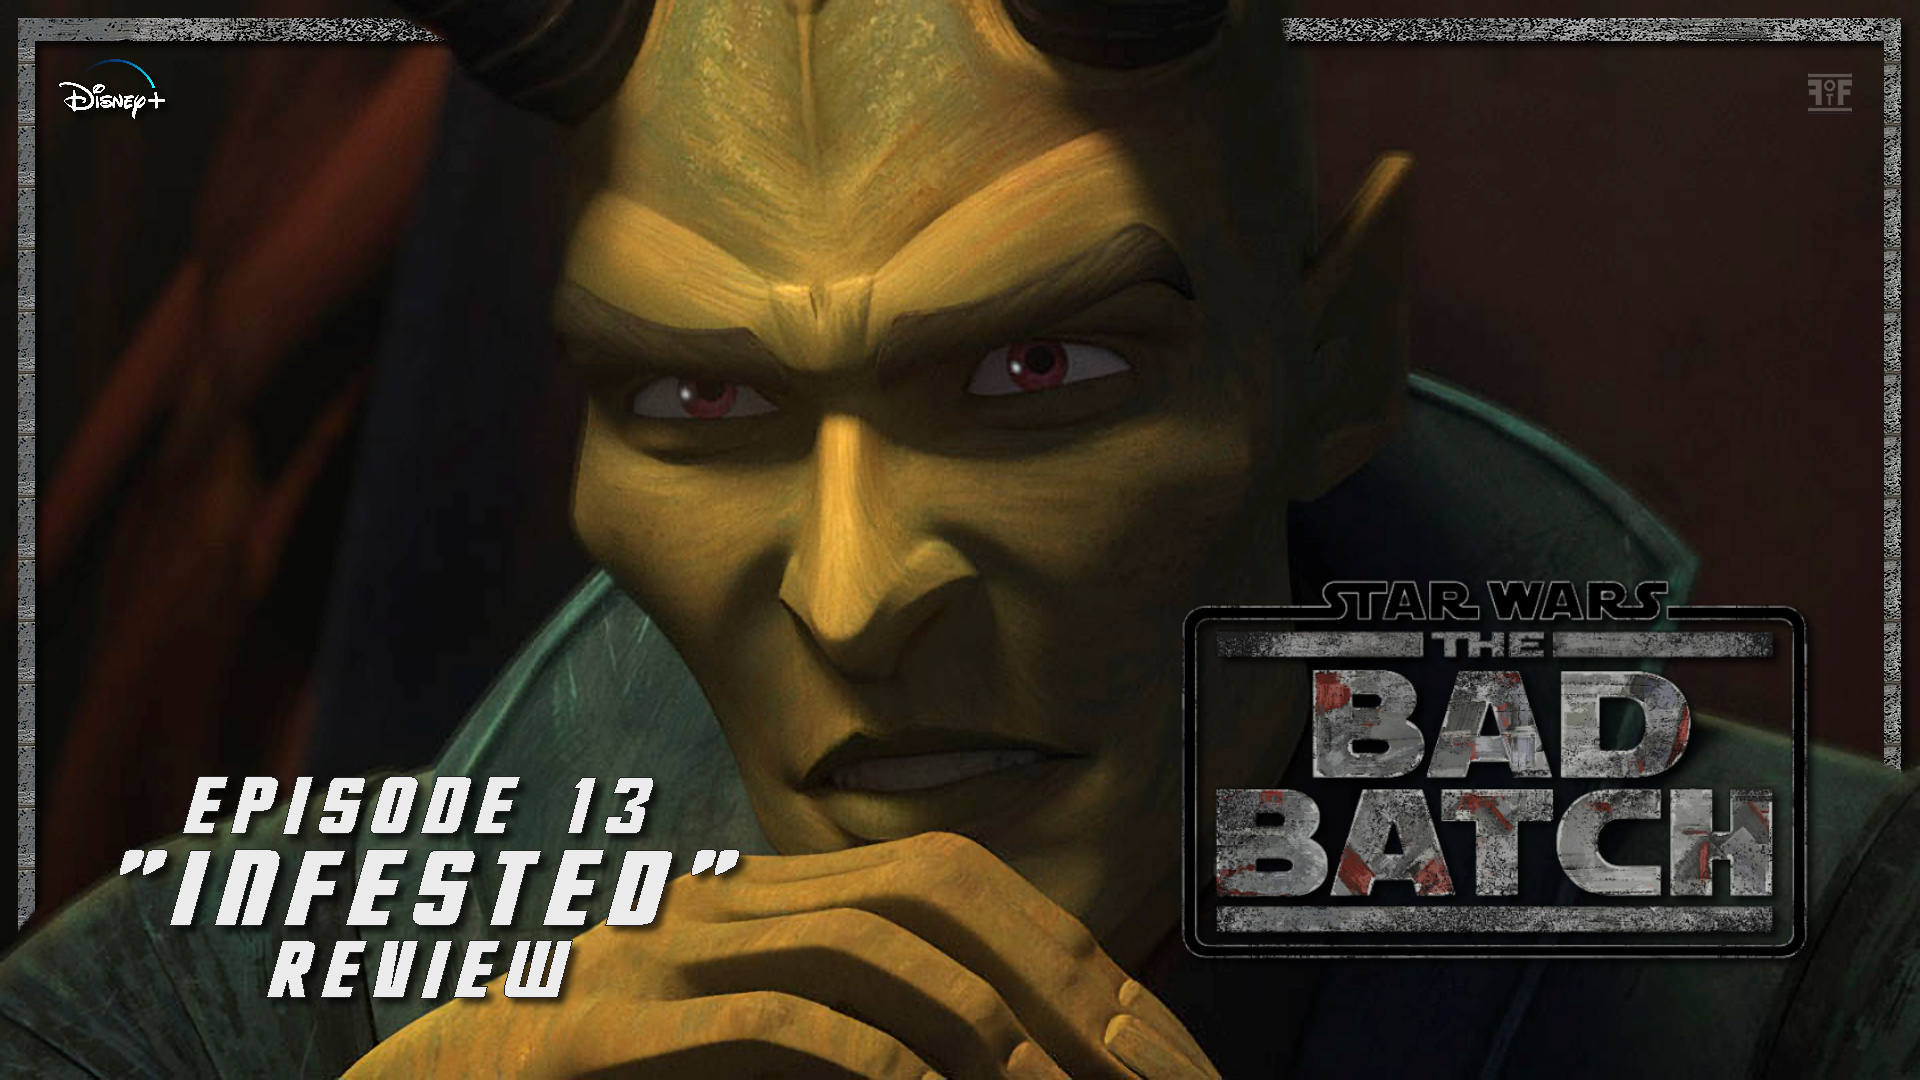 Star Wars: The Bad Batch Episode 13 'Infested'